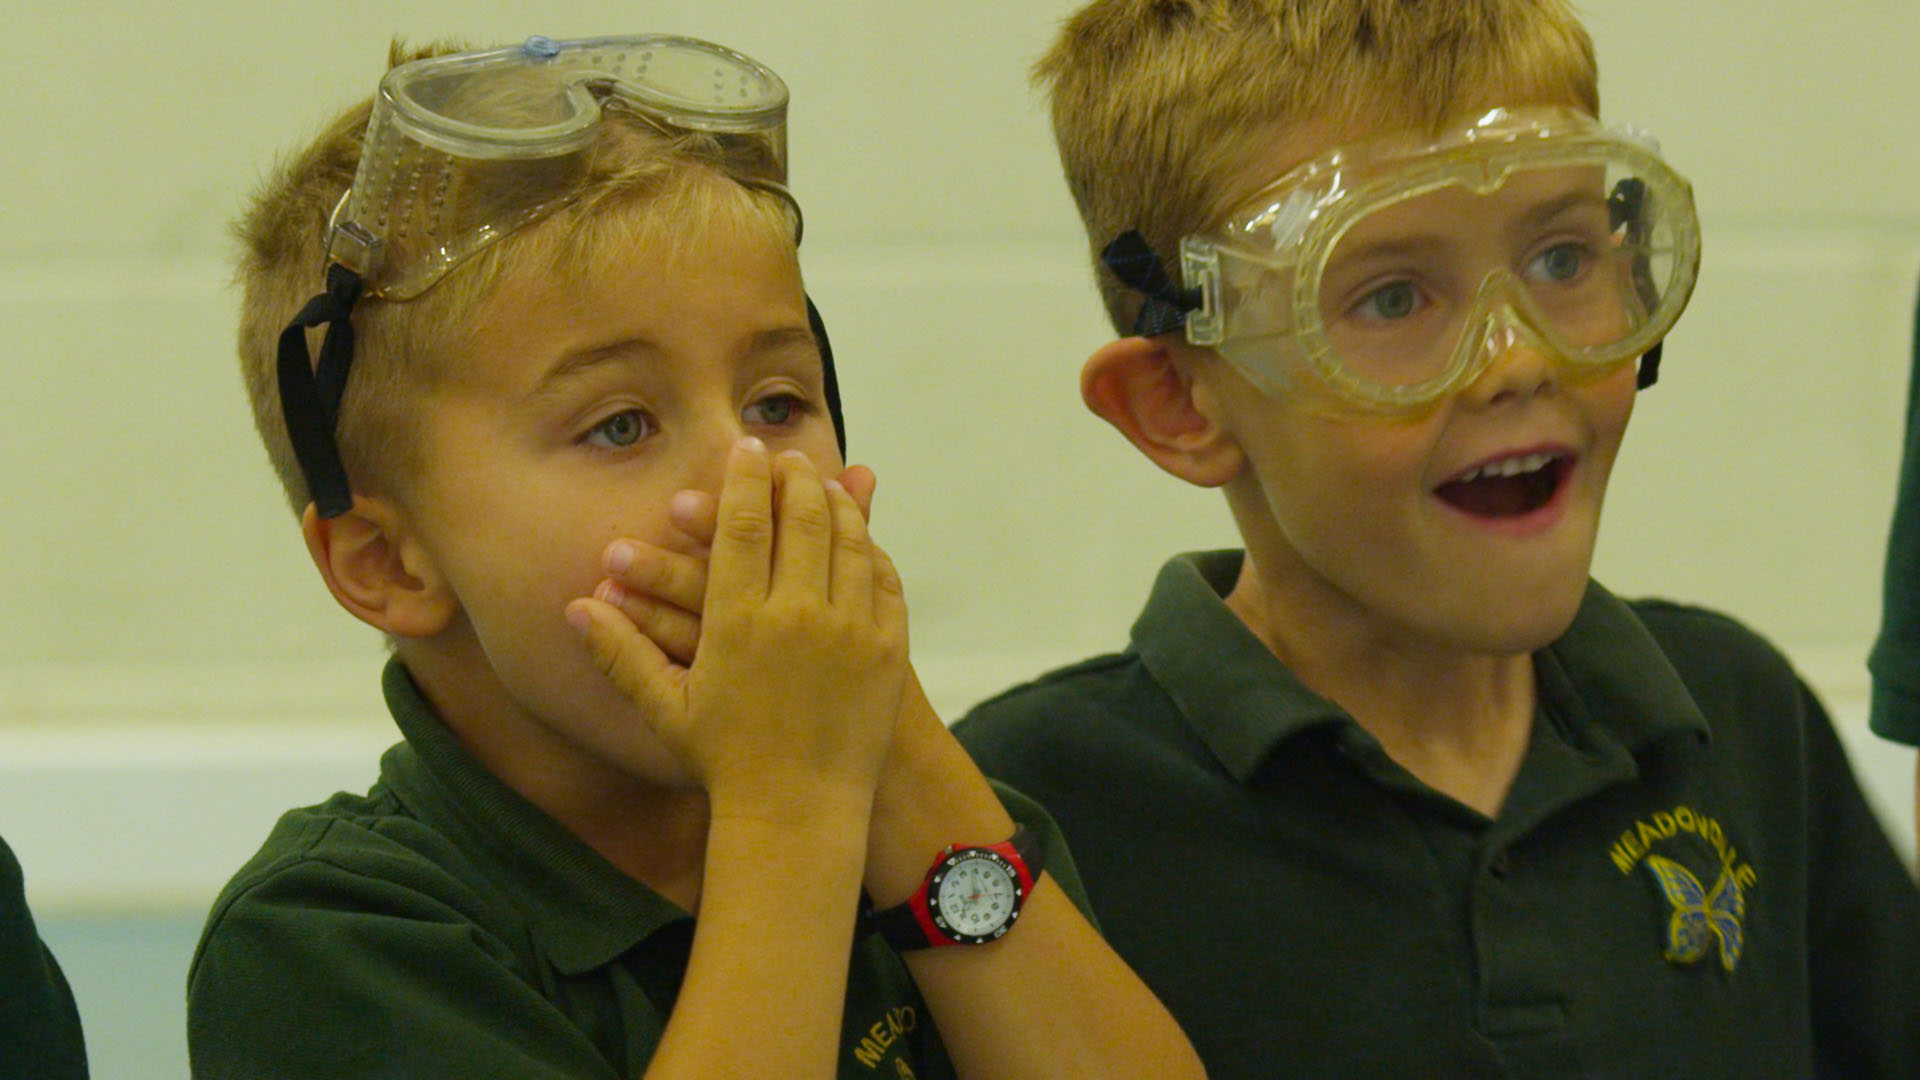 Children watching science experiment